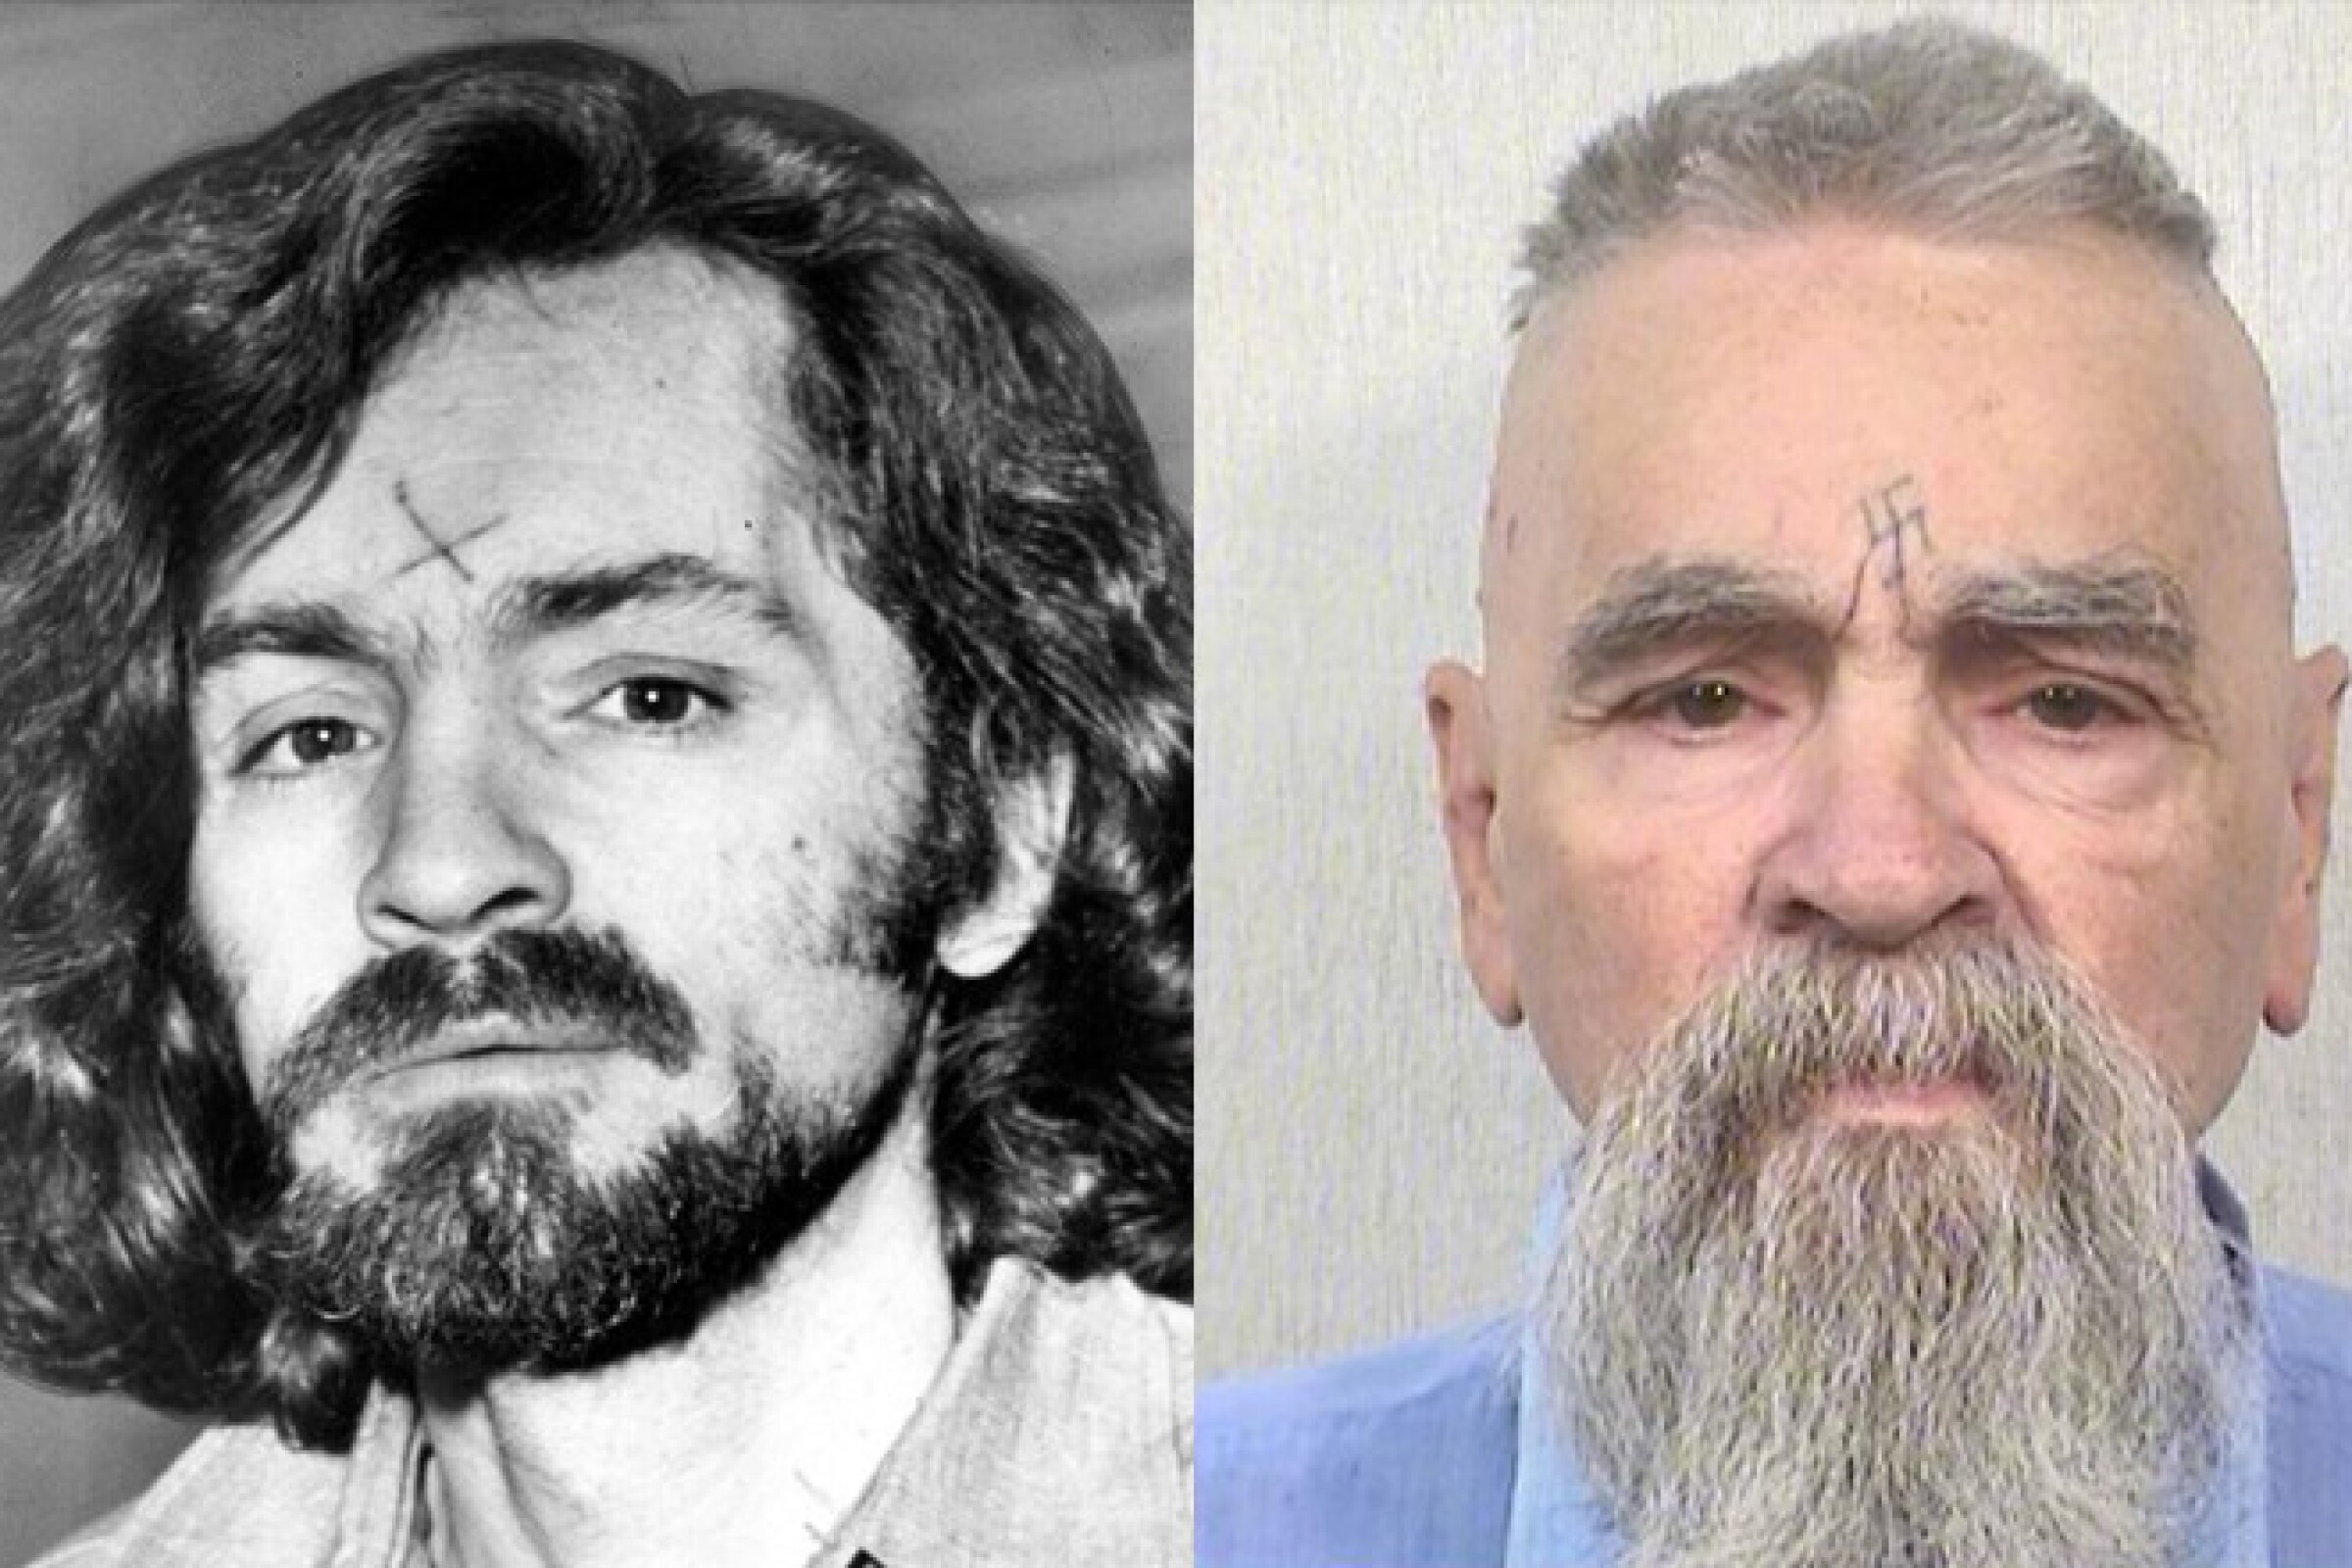 Charles Manson, at left, on his way to court in 1970 and, at right, in 2014.